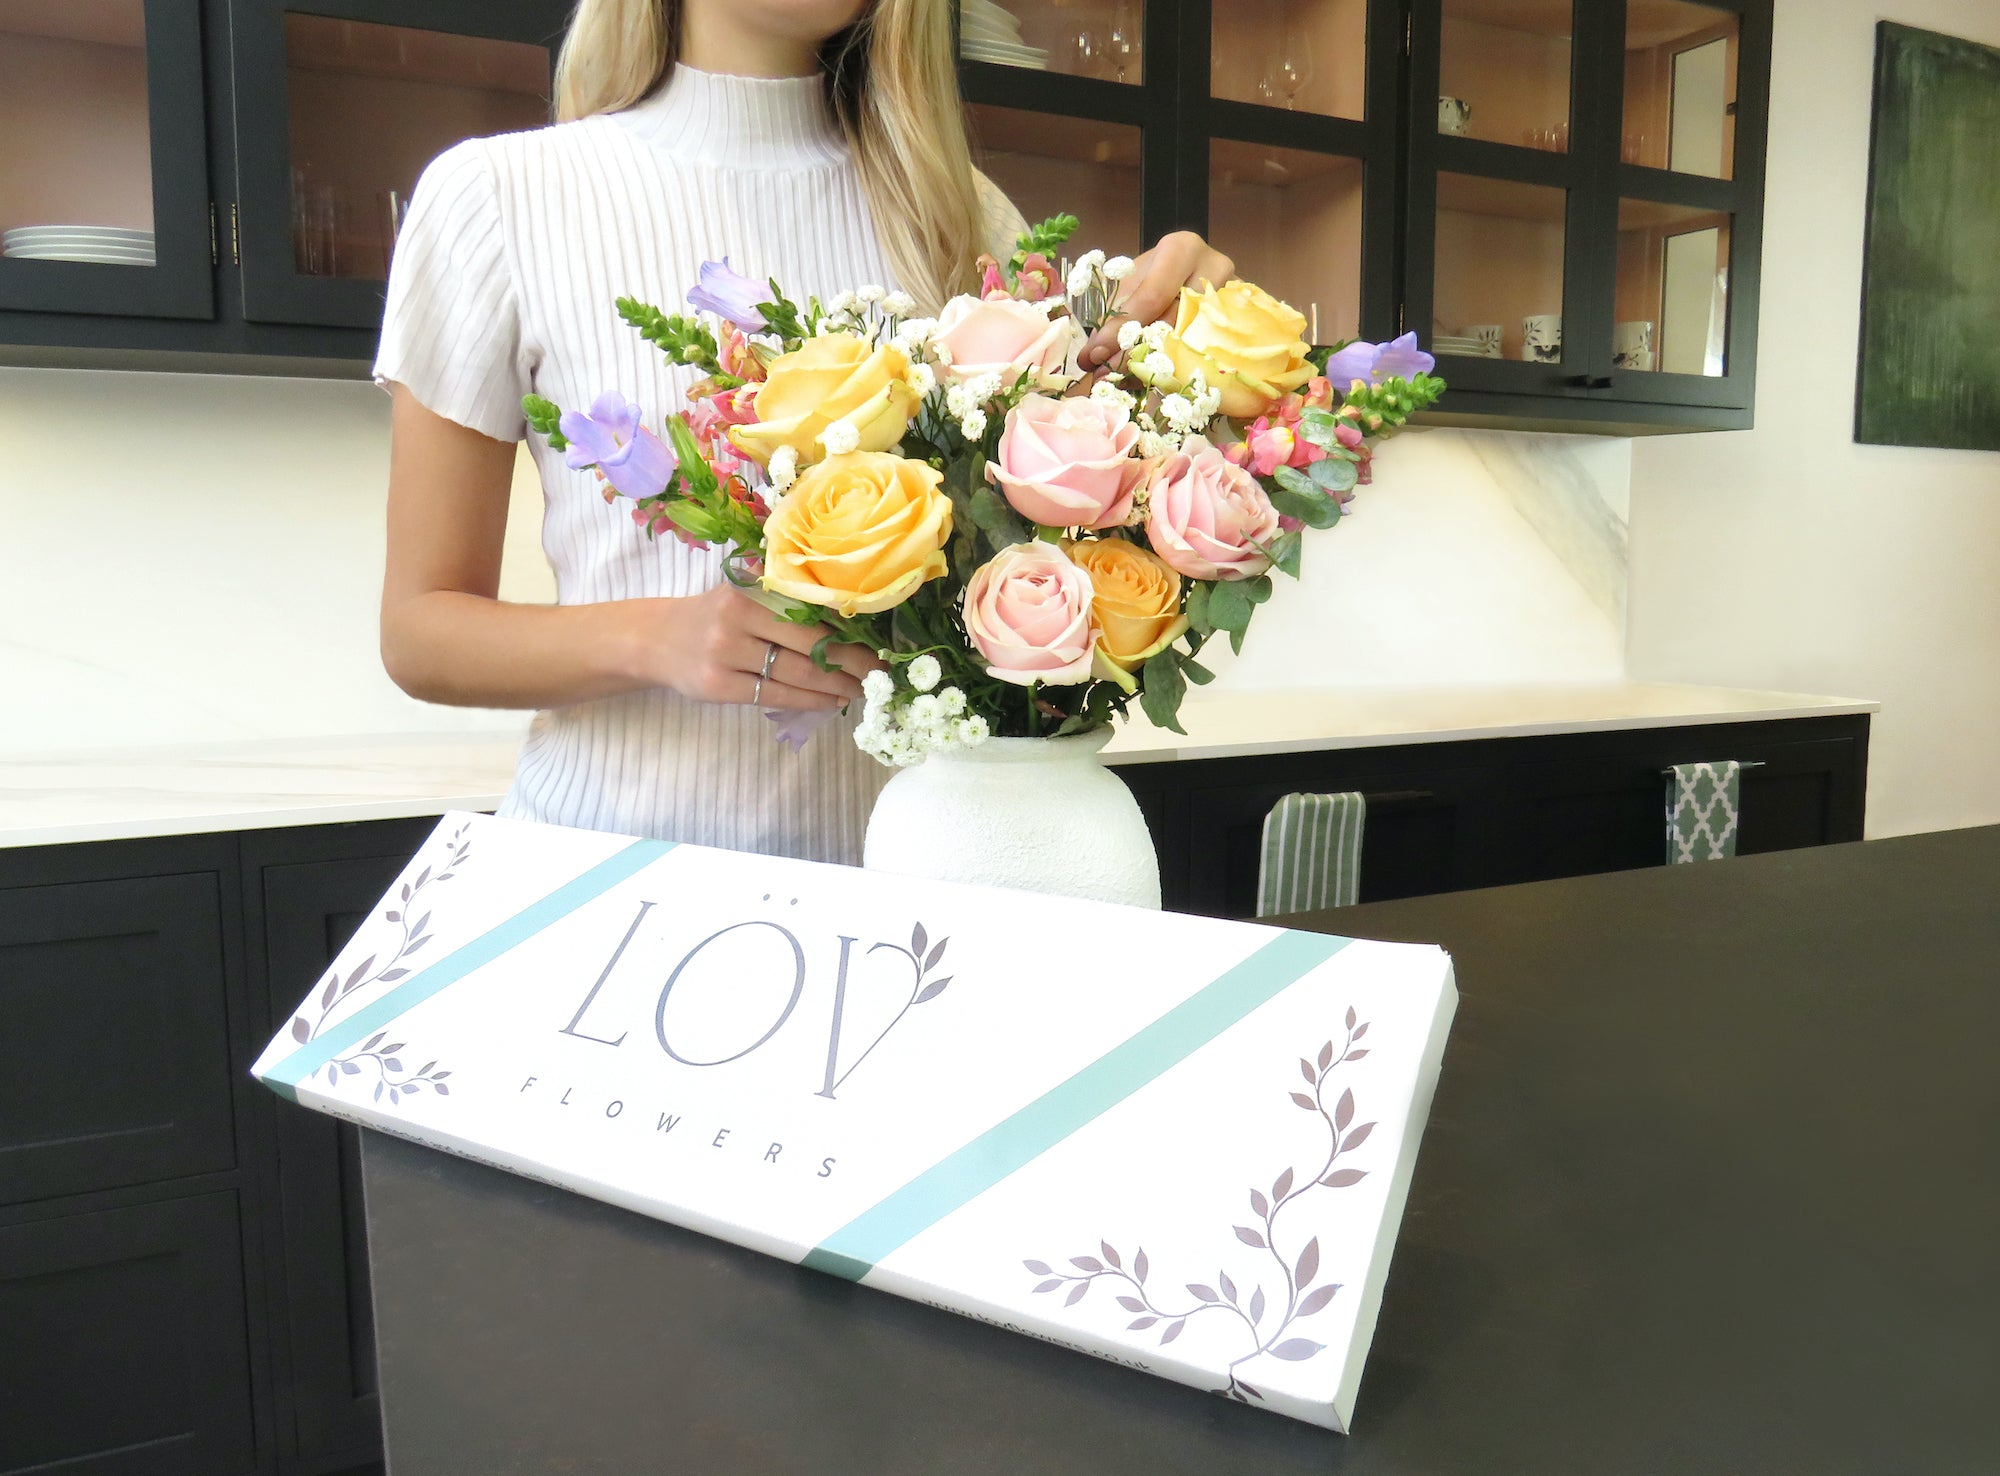 woman in kitchen arranging lov flowers letterbox flowers